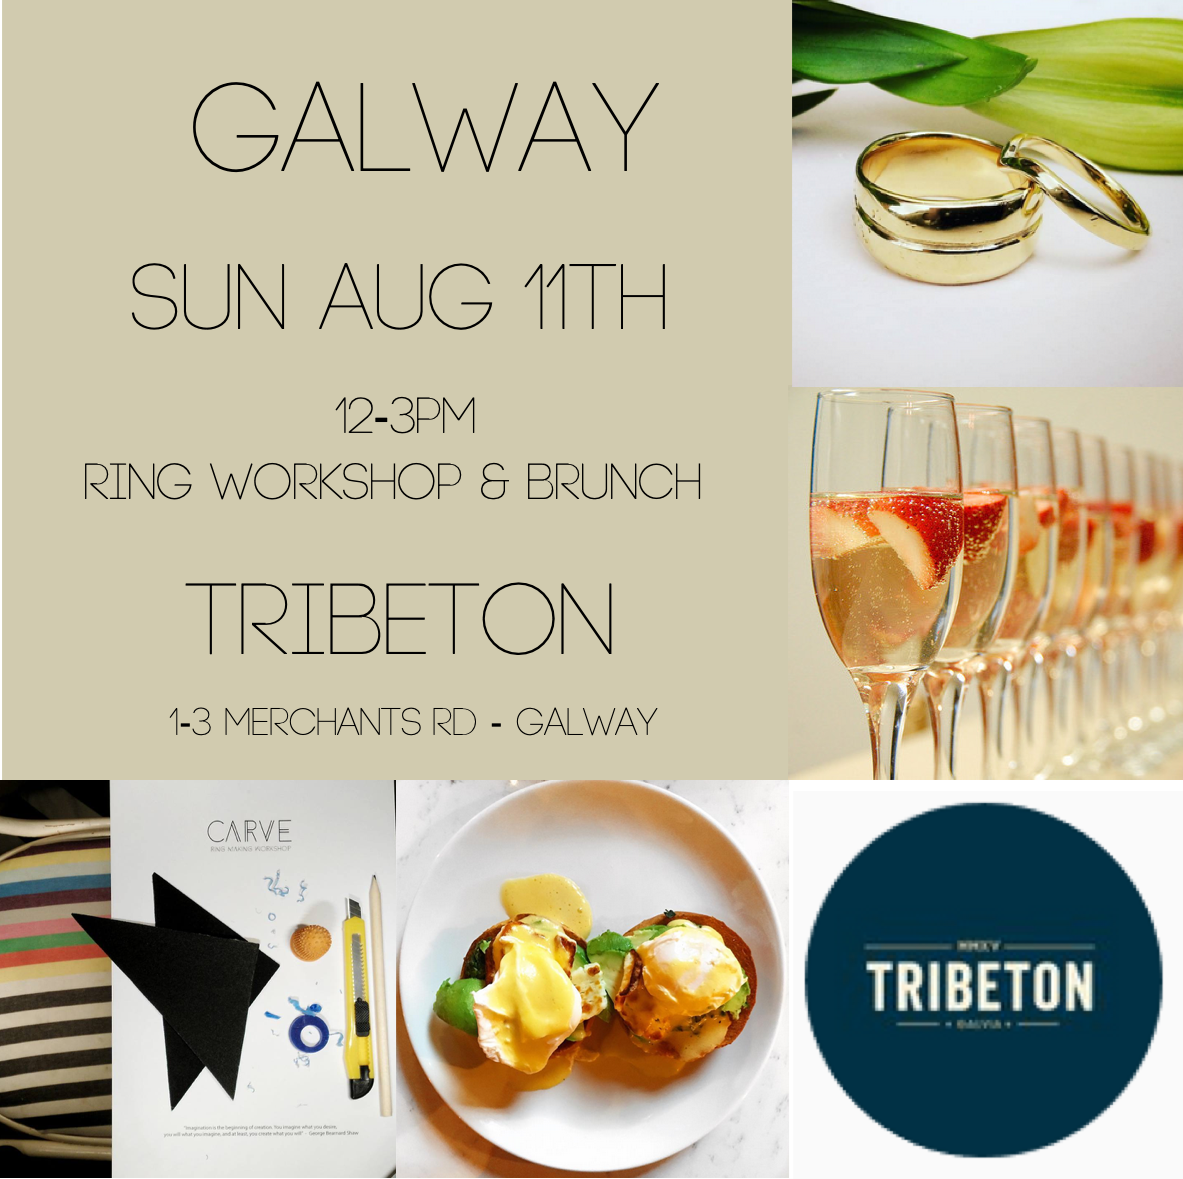 Galway 11th Aug